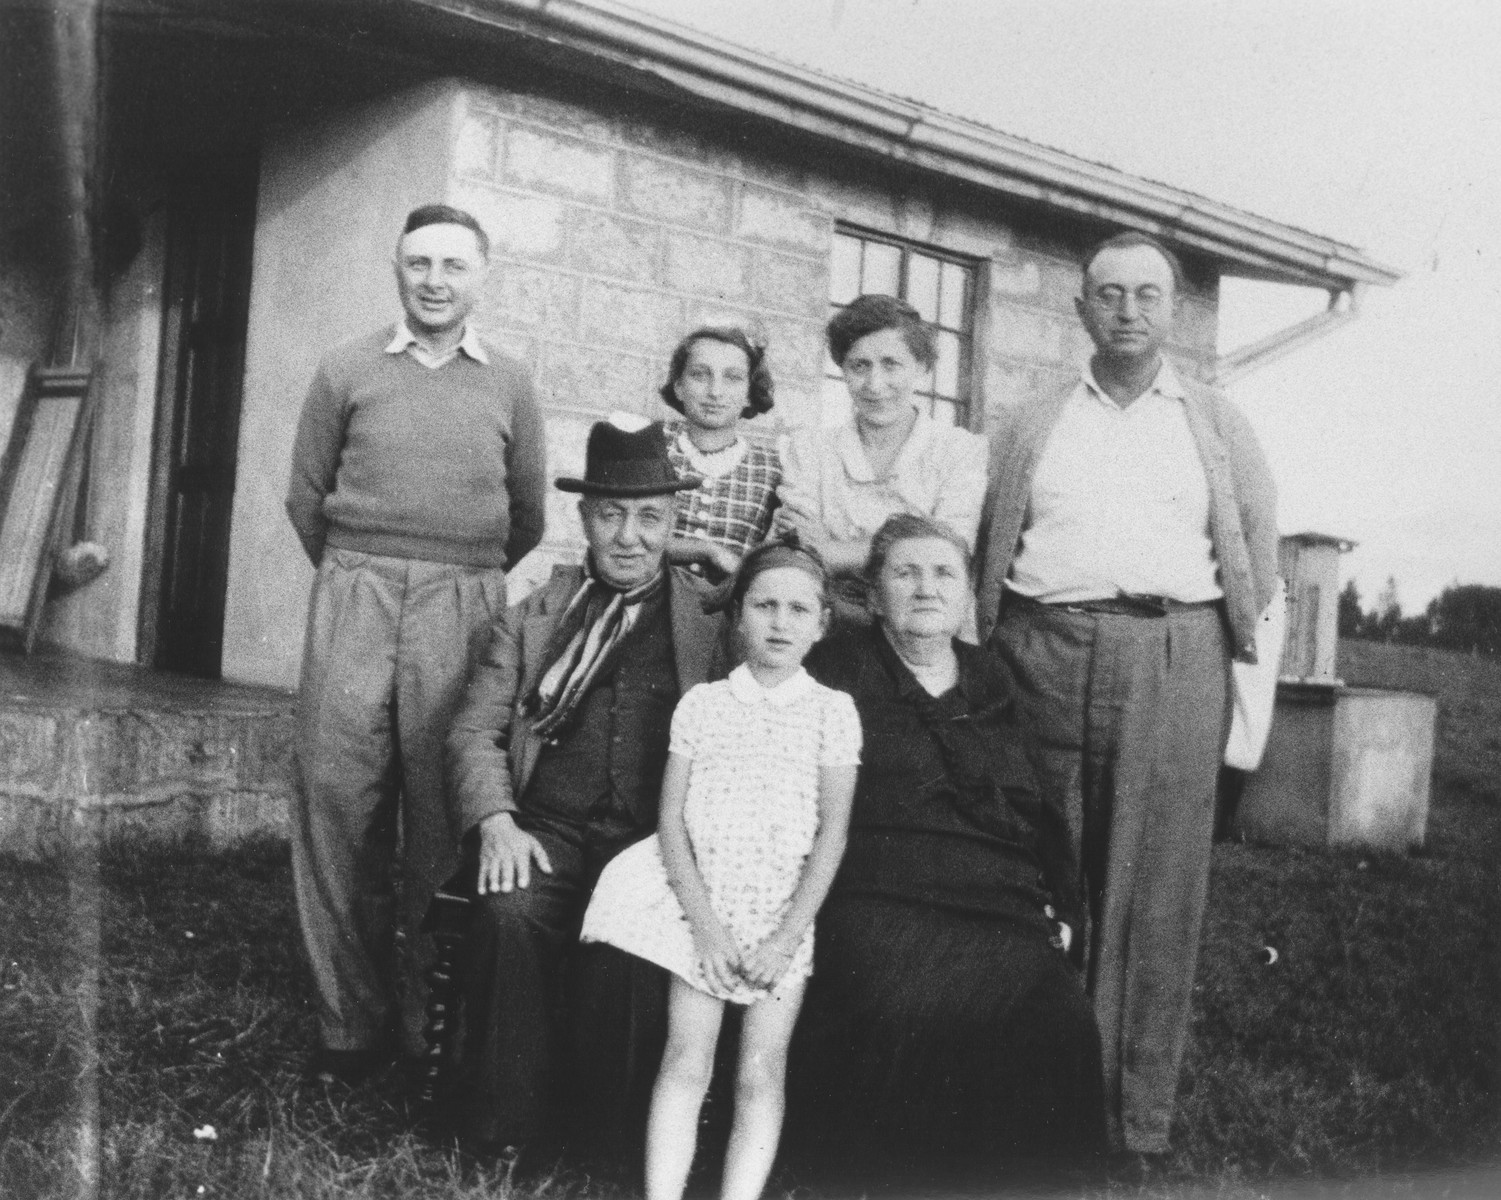 Group portrait of members of the extended Berg family on their farm near Limuru, Kenya (Kiambu district), where they found refuge during World War II.  Pictured are Joseph and Klara Berg, their daughters Inge and Gisela and parents Max and Klara.  Also pictured is Joseph's cousin also named Josef Berg.